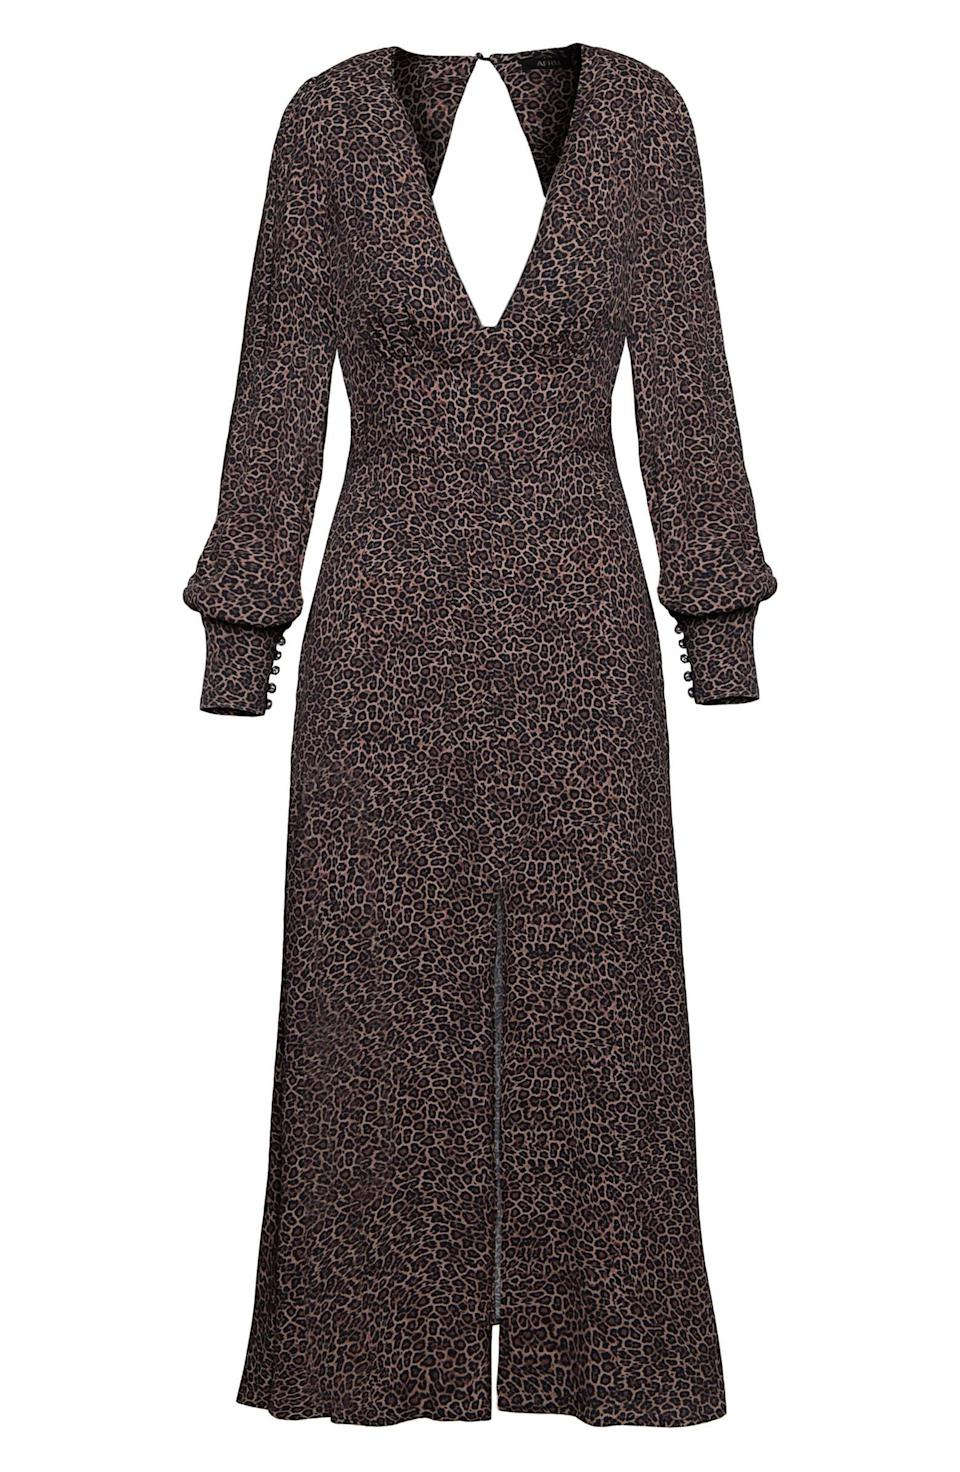 <p>This <span>AFRM Myles Animal Print Plunge Neck Long Sleeve Dress</span> ($62, originally $148) will make you look and feel good.</p>